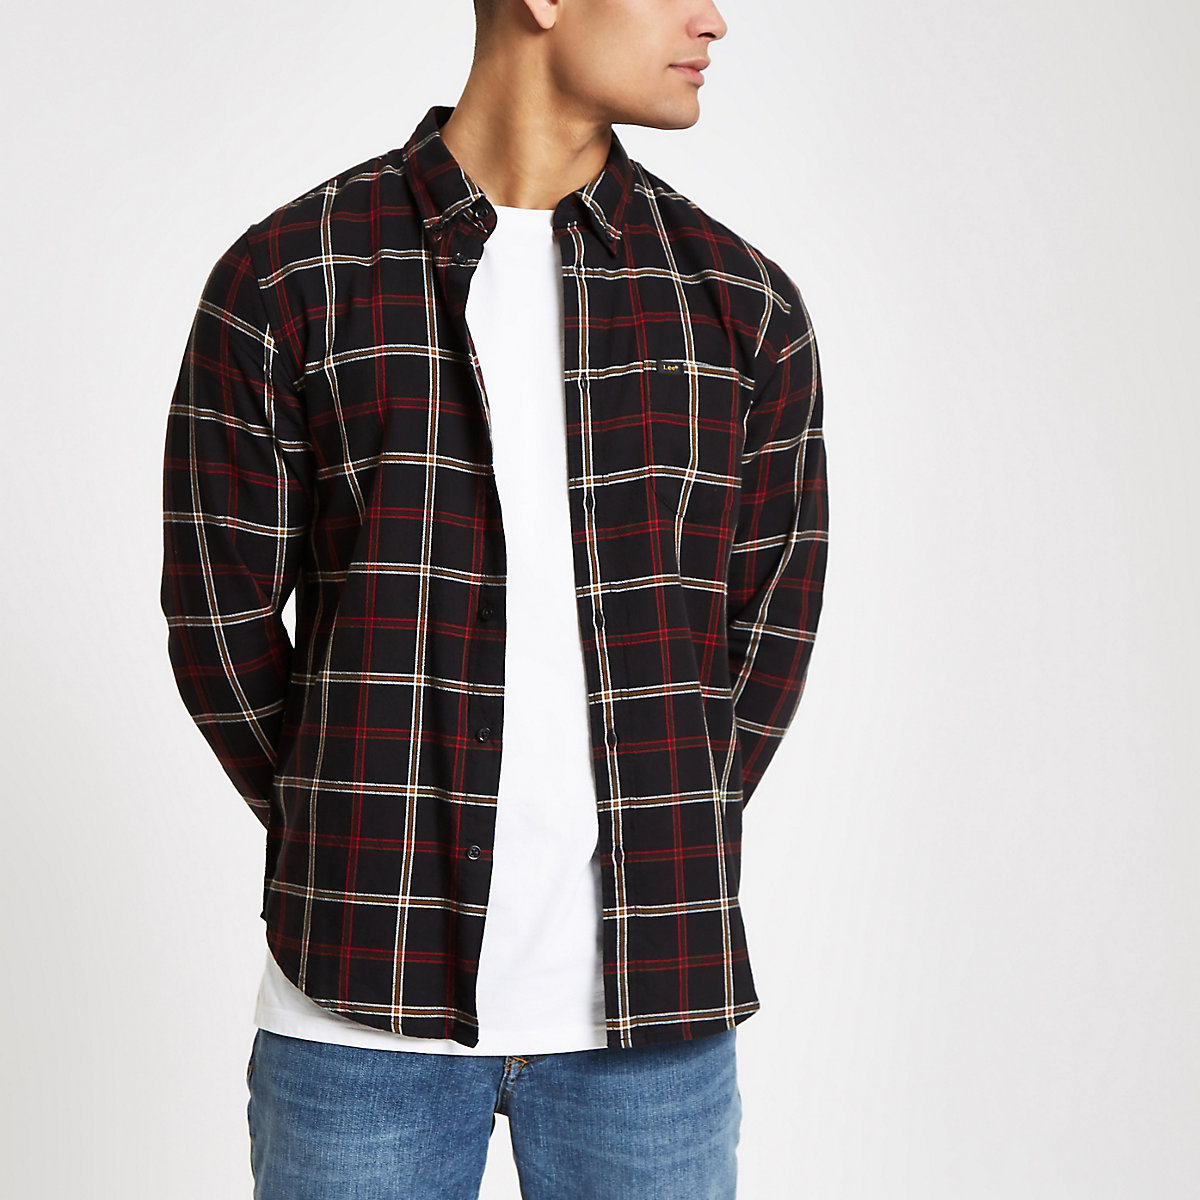 Lee black check button-down shirt